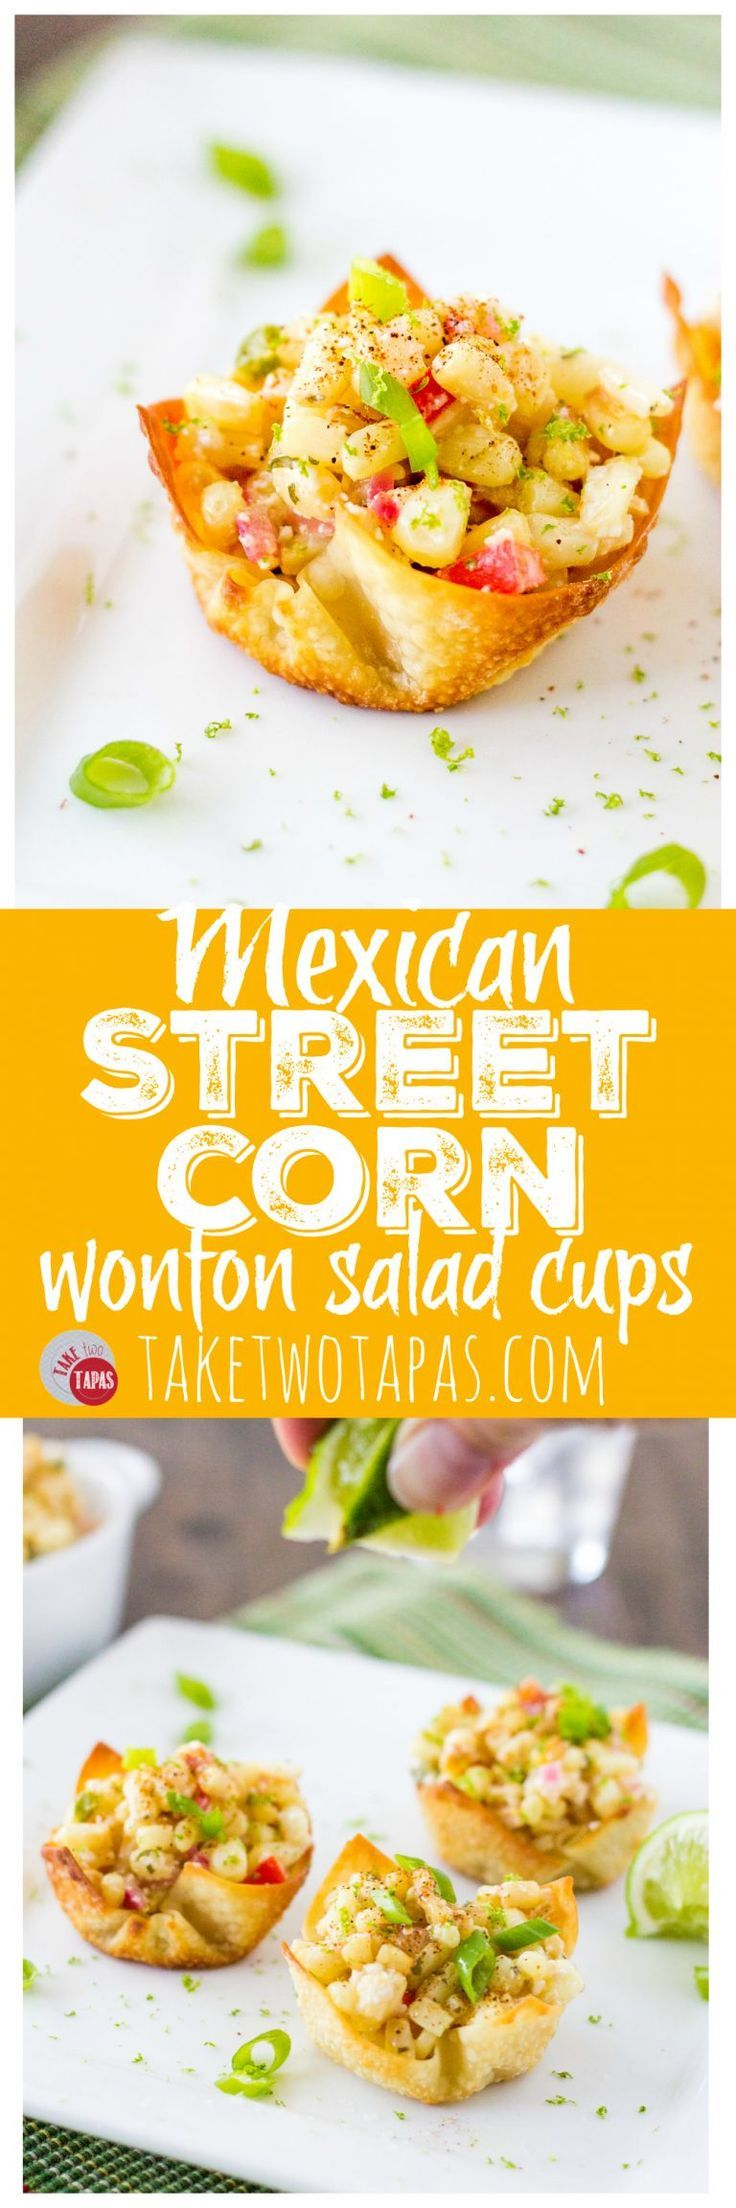 These Mexican Street Corn Salad Wonton Cups are the bomb! Roasted corn combined with jalapeno, red onions, sour cream, Cojita cheese, and some chili powder for spice makes a great party appetizer or side dish. Mexican Street Corn Salad Wonton Cups Recipe